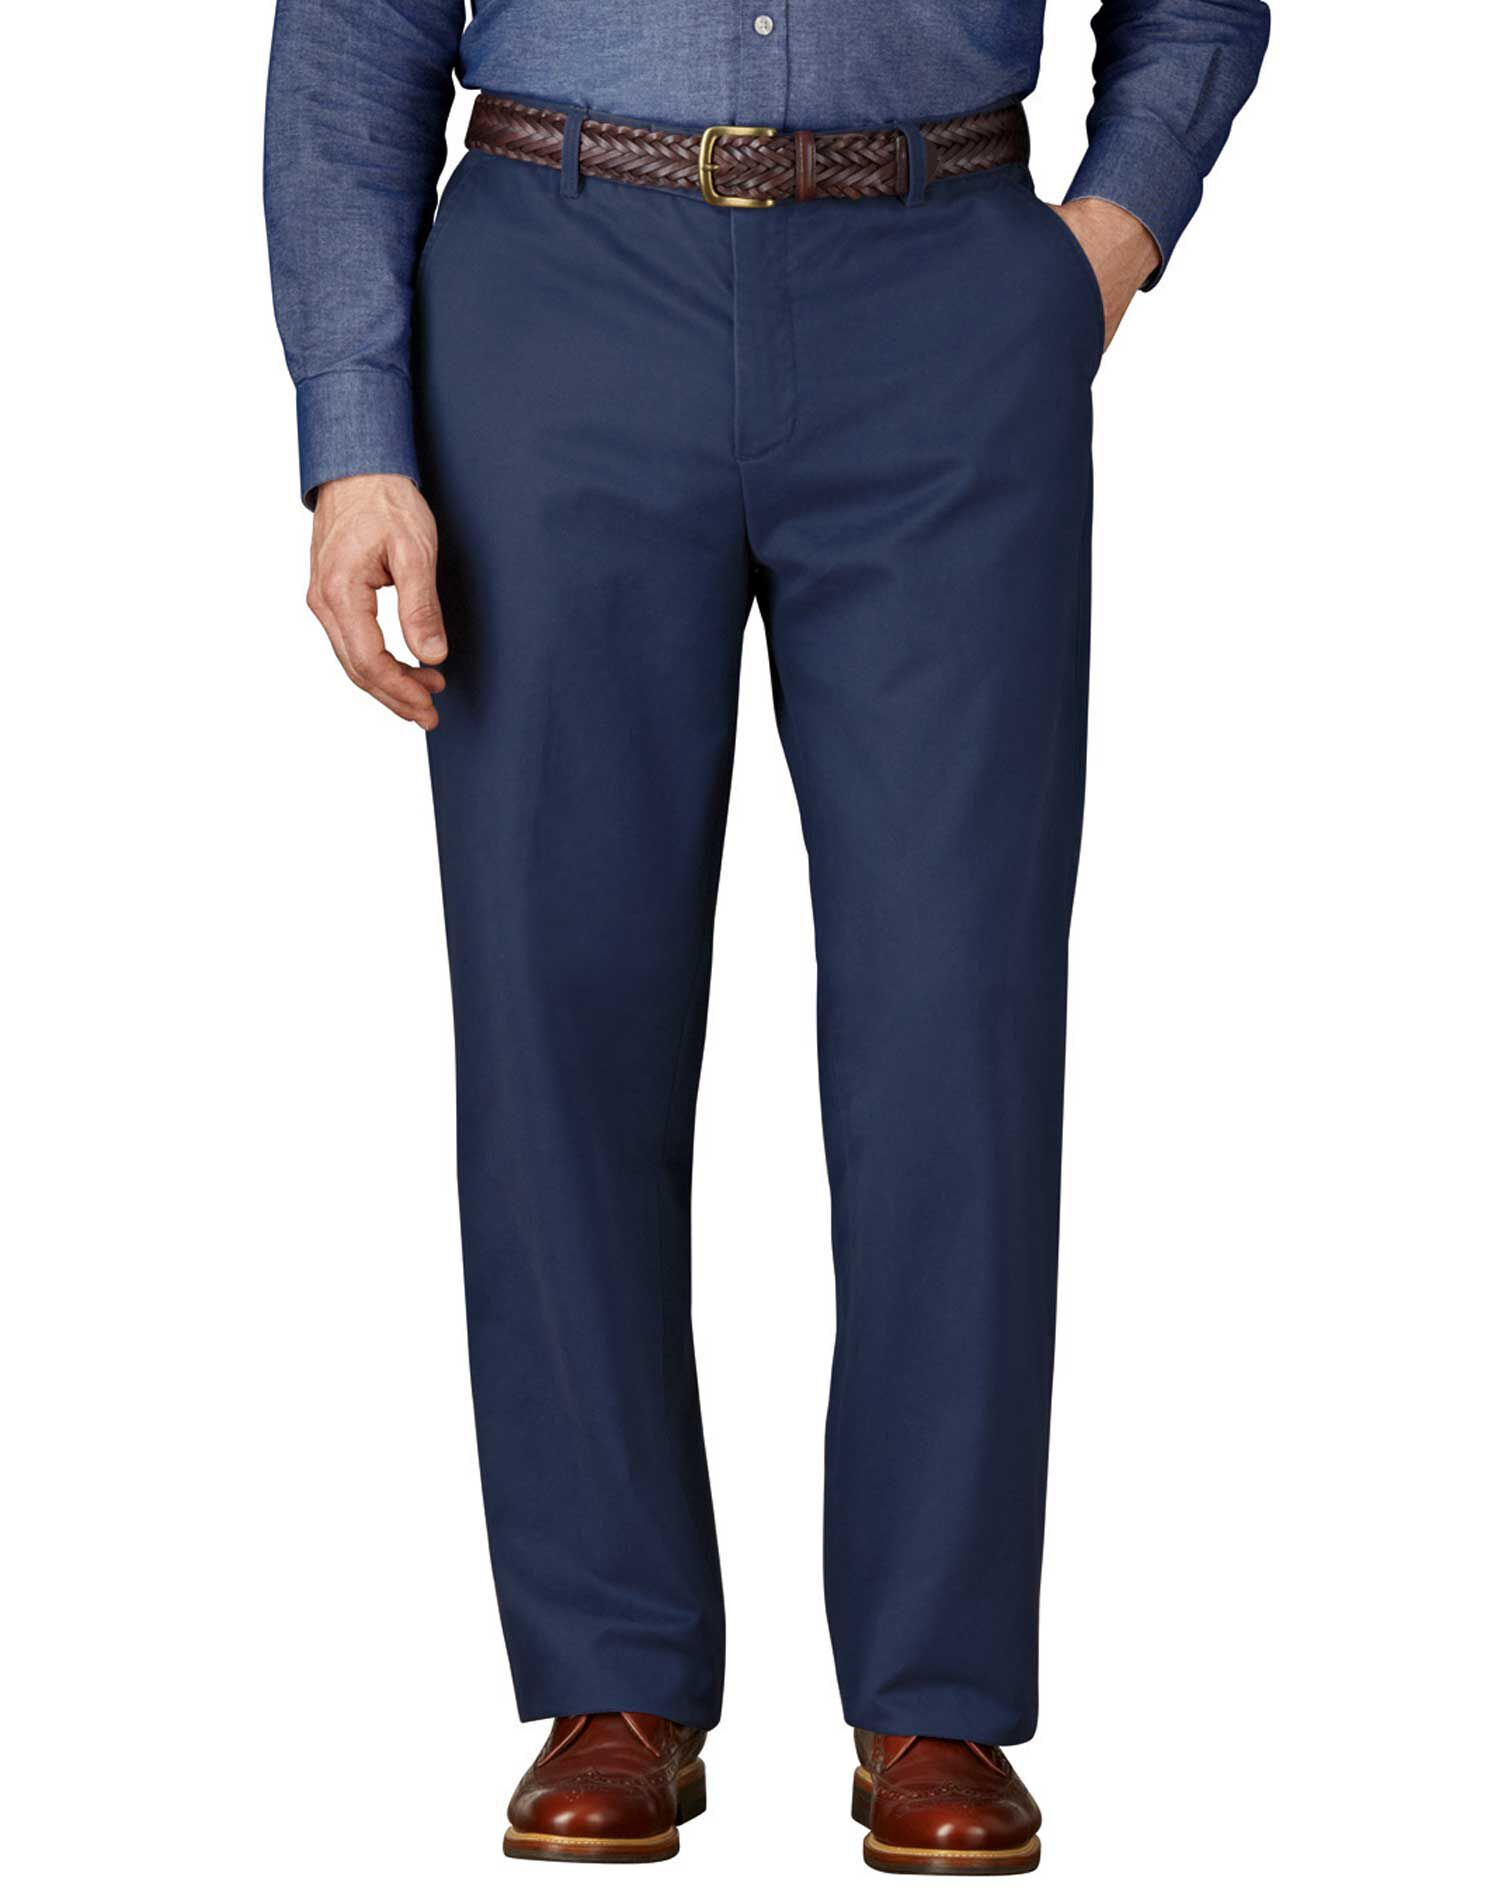 Blue Classic Fit Flat Front Weekend Cotton Chino Trousers Size W42 L34 by Charles Tyrwhitt